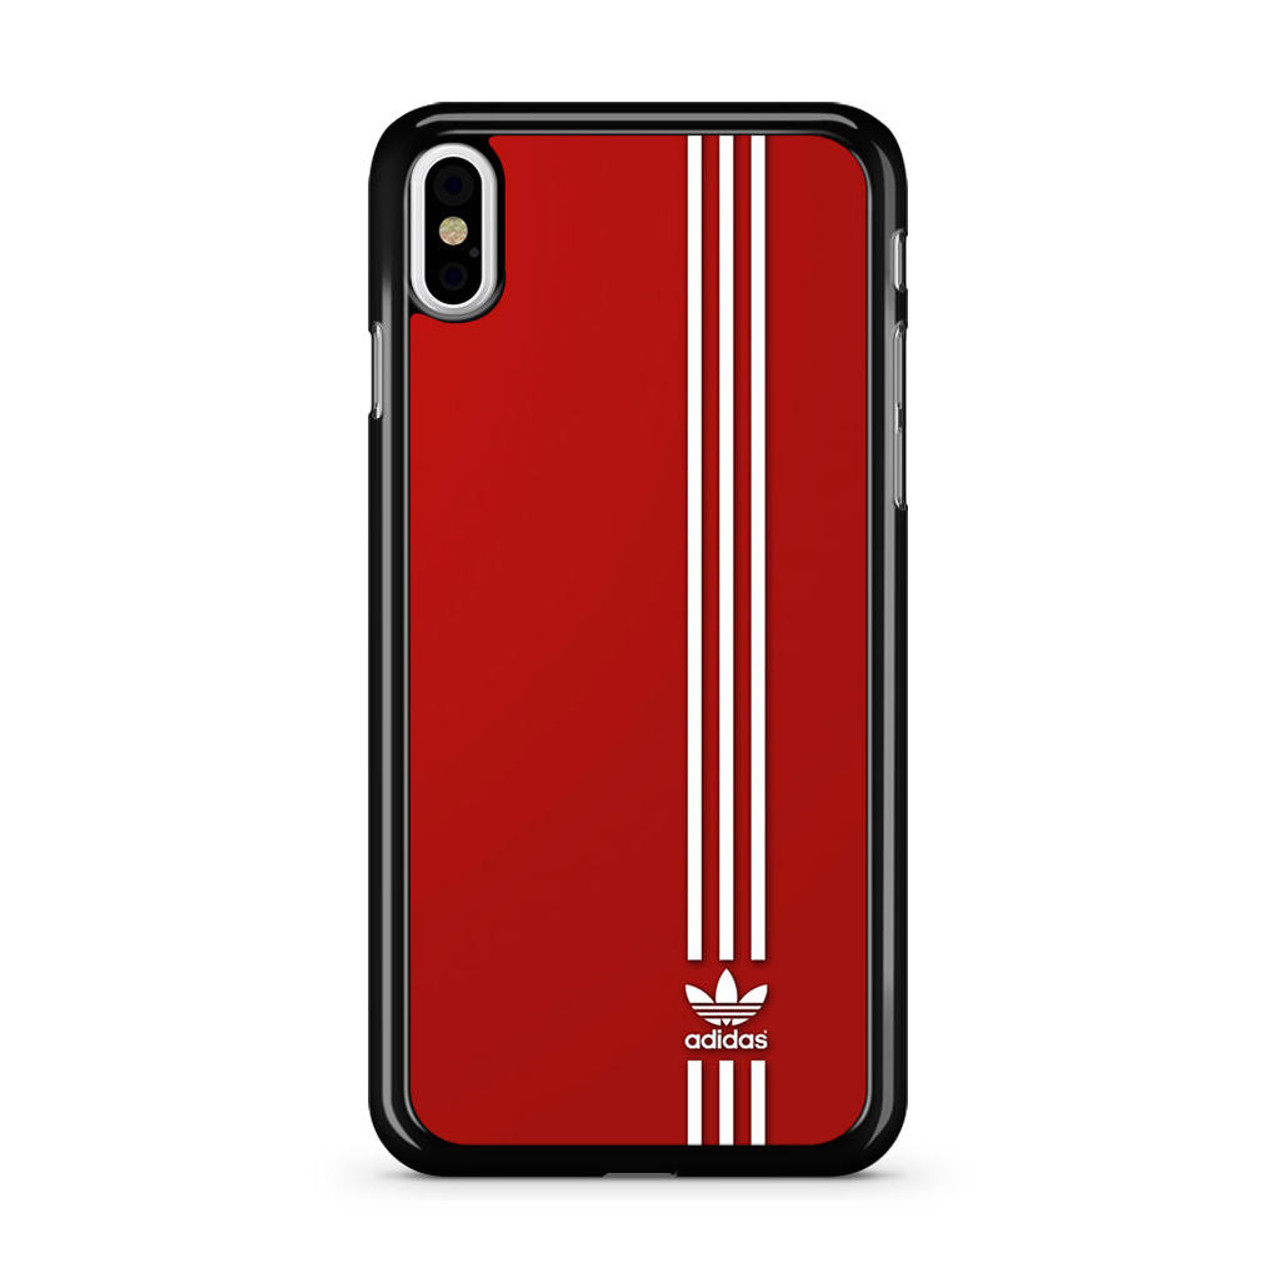 the best attitude 1100d a5d79 Brand Adidas Red White Sport iPhone XS Max Case